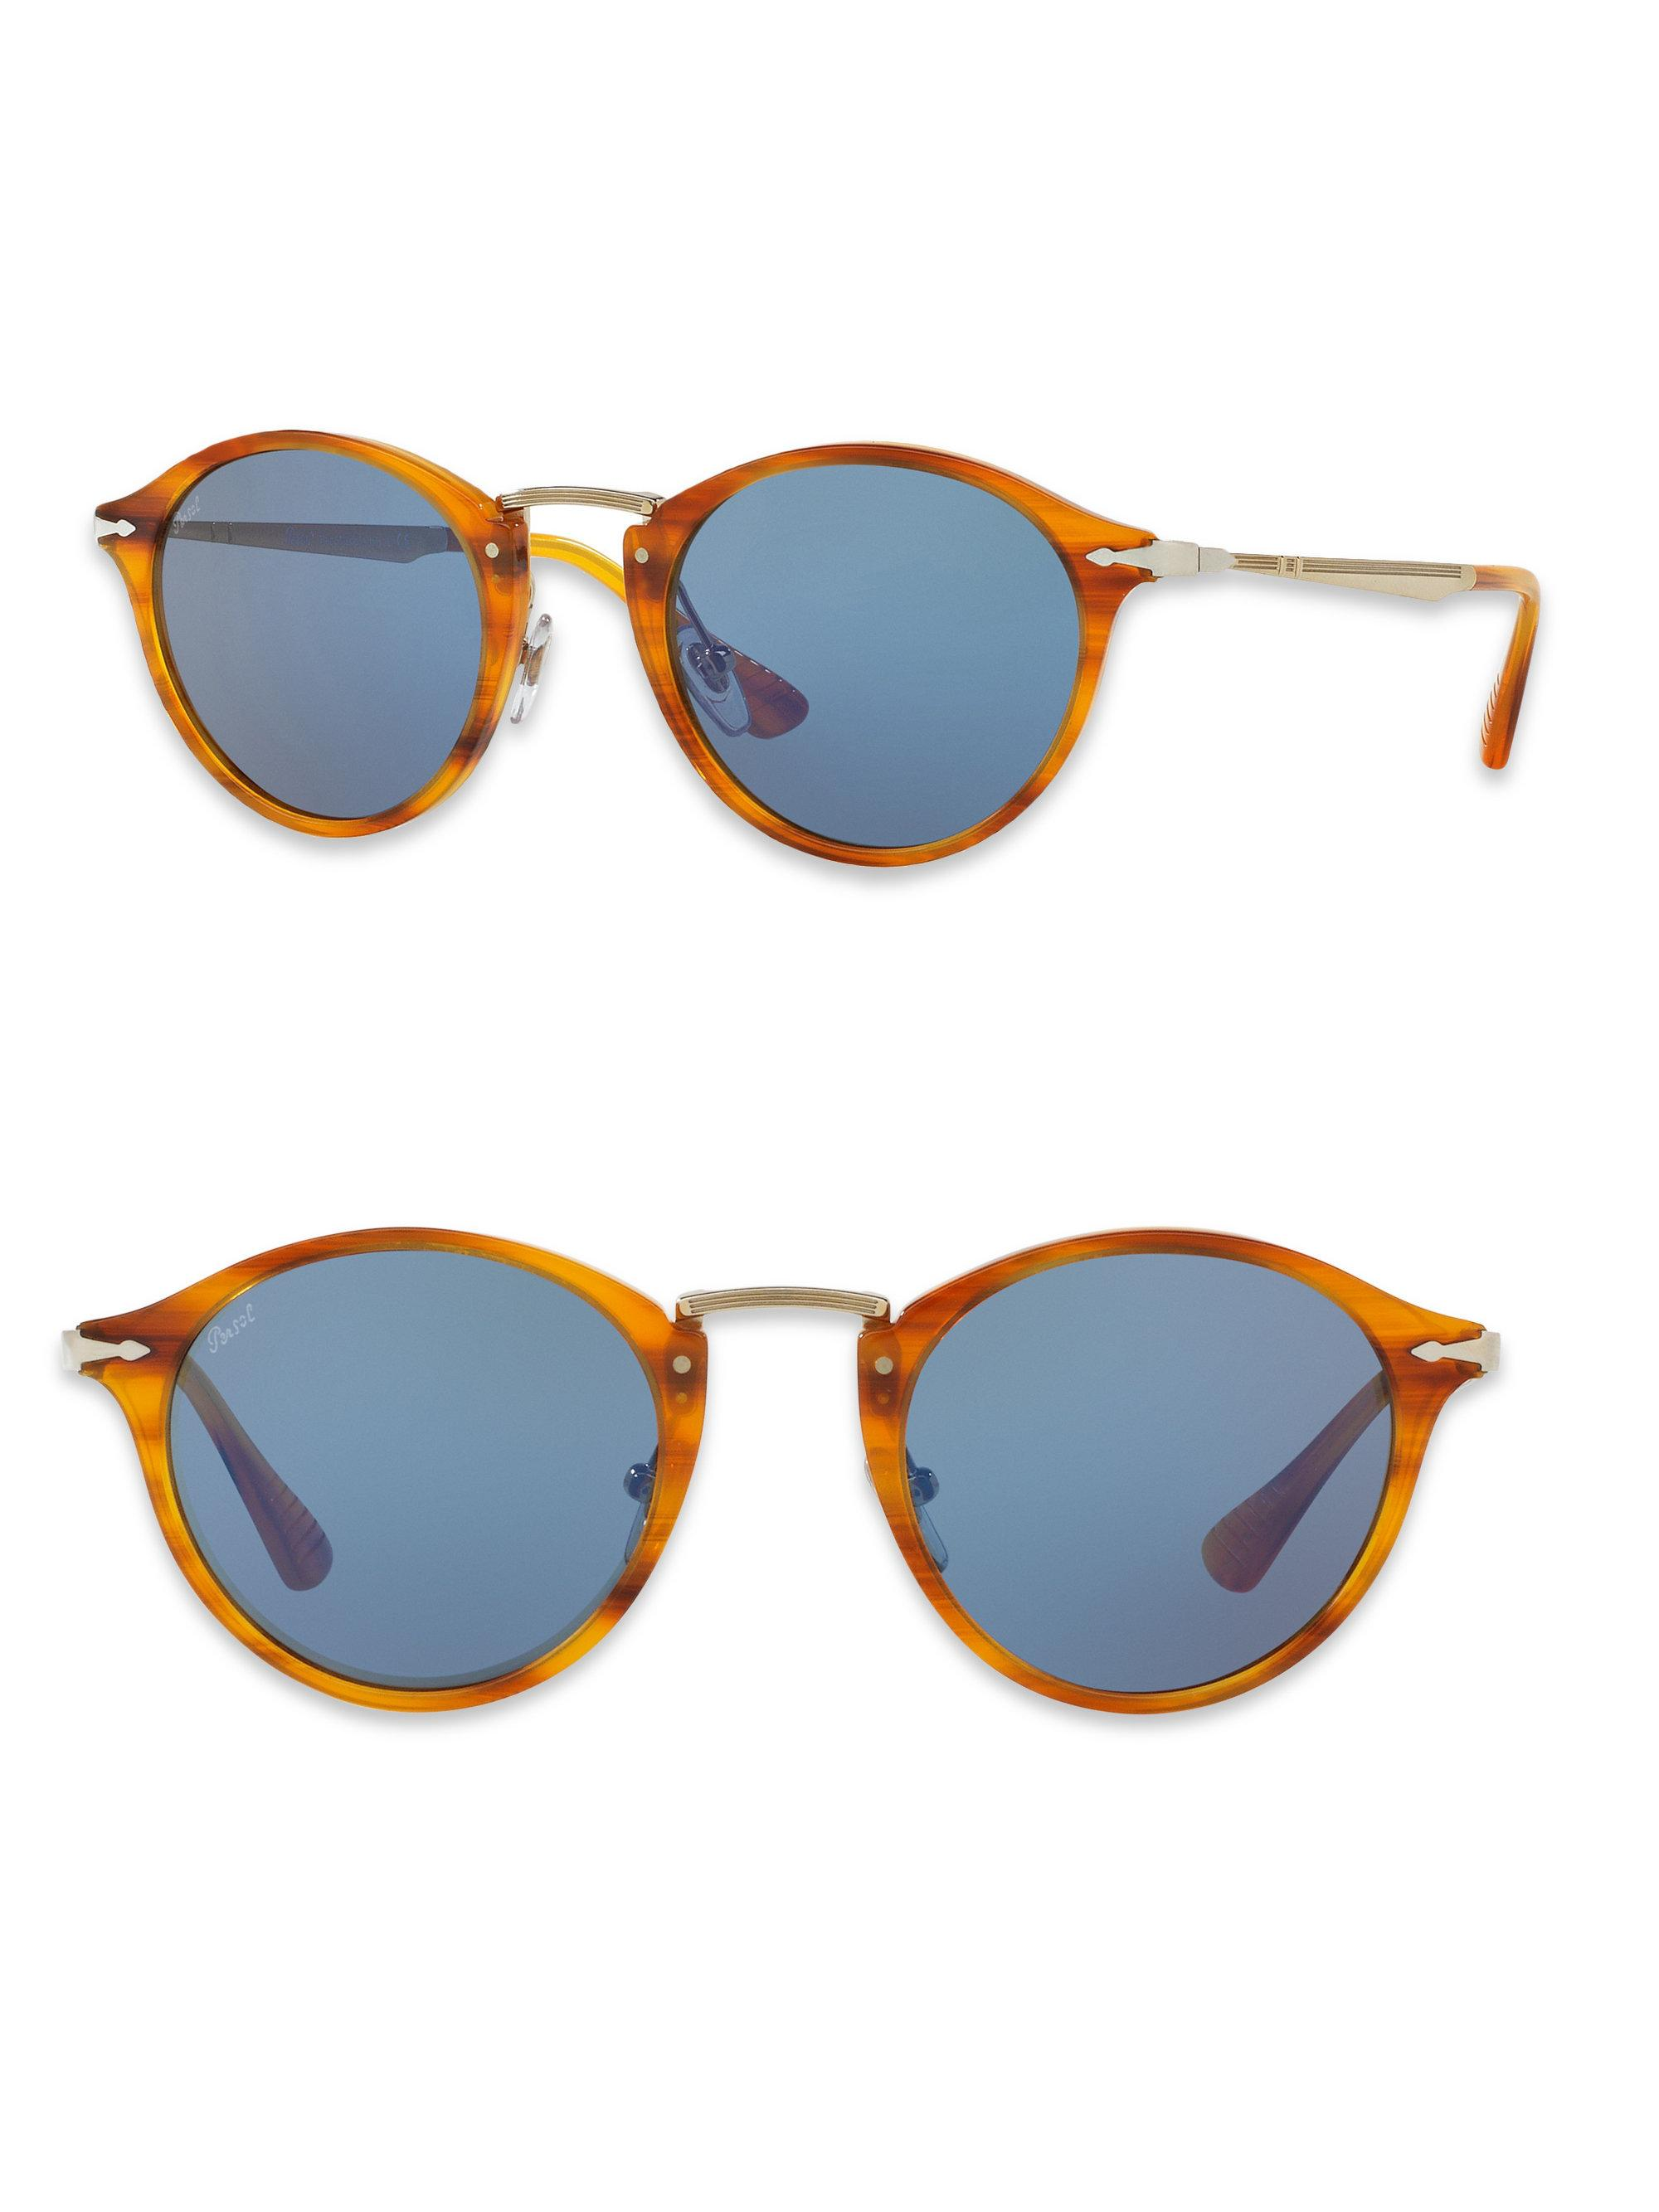 01df21730a Lyst - Persol Calligrapher 51mm Phantos Sunglasses in Blue for Men